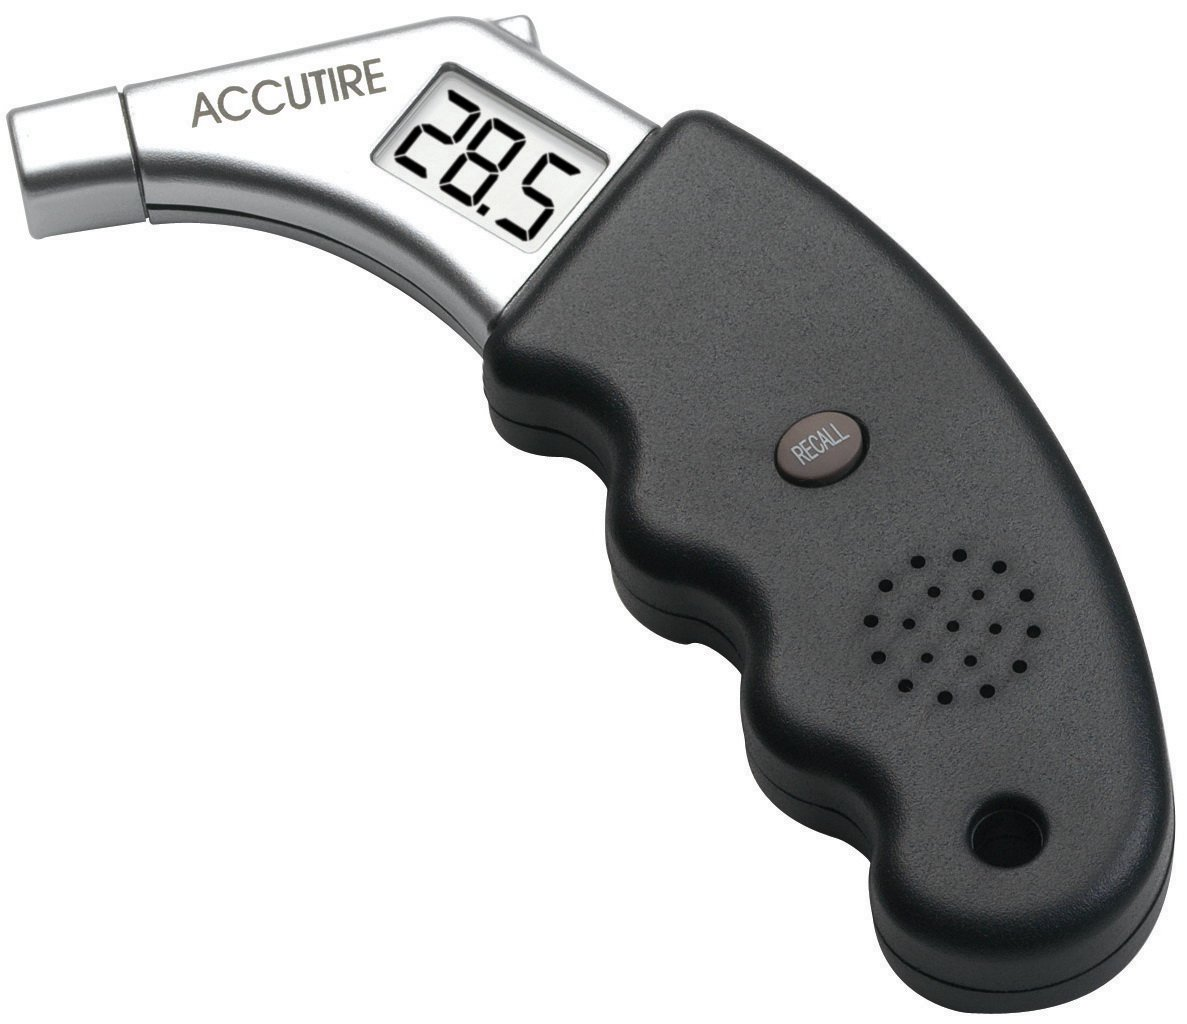 Measurement Limited Accutire MS-4441GB Talking Digital Tire Pressure Gauge, English and Spanish